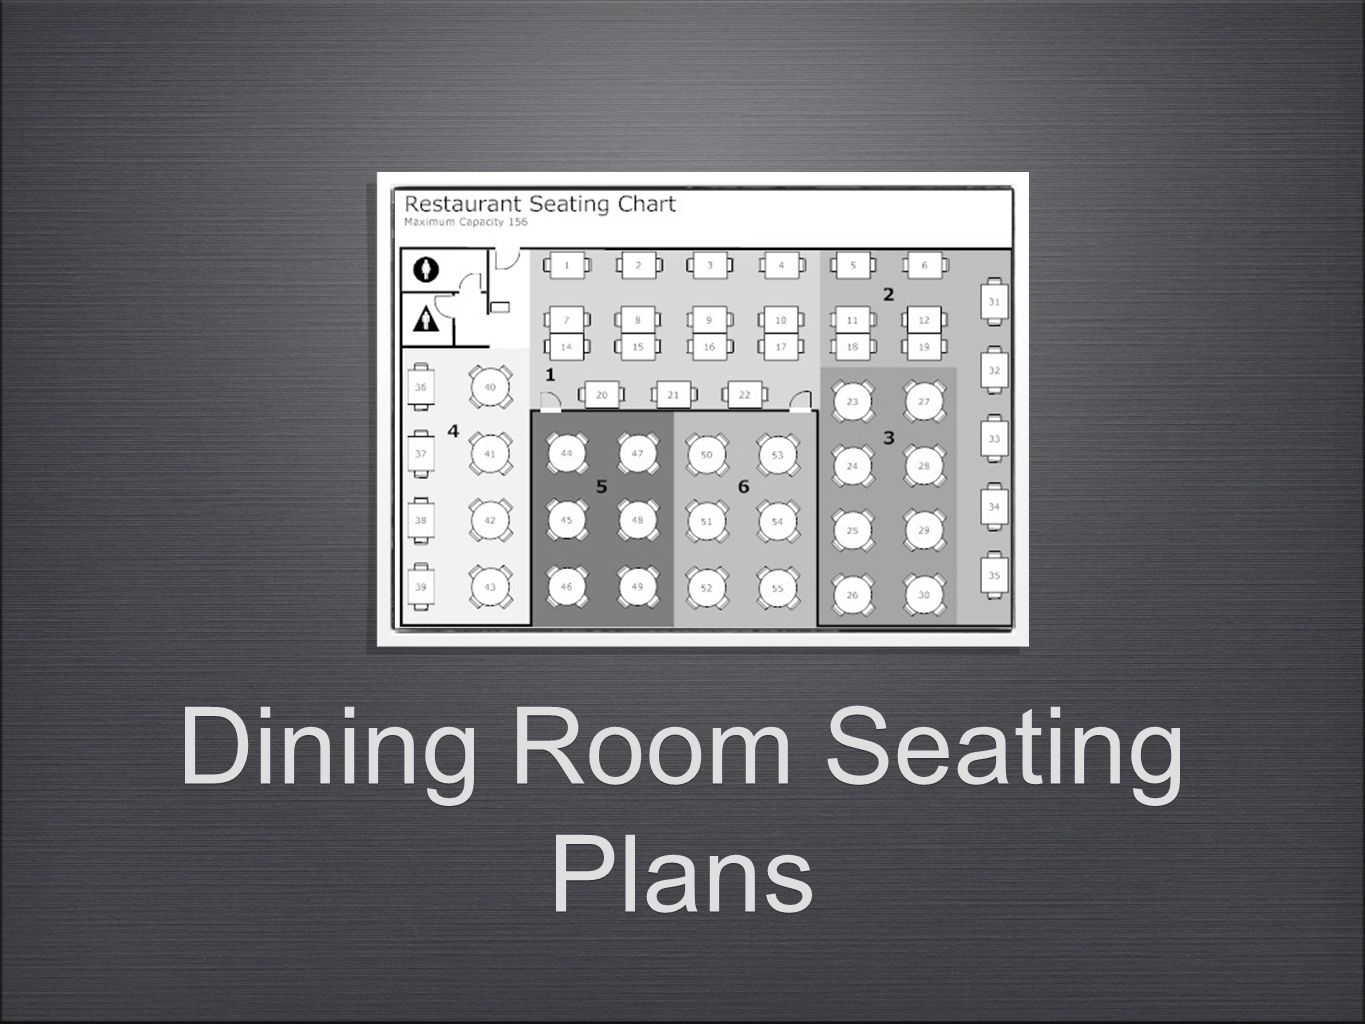 Dining Room Seating Plans